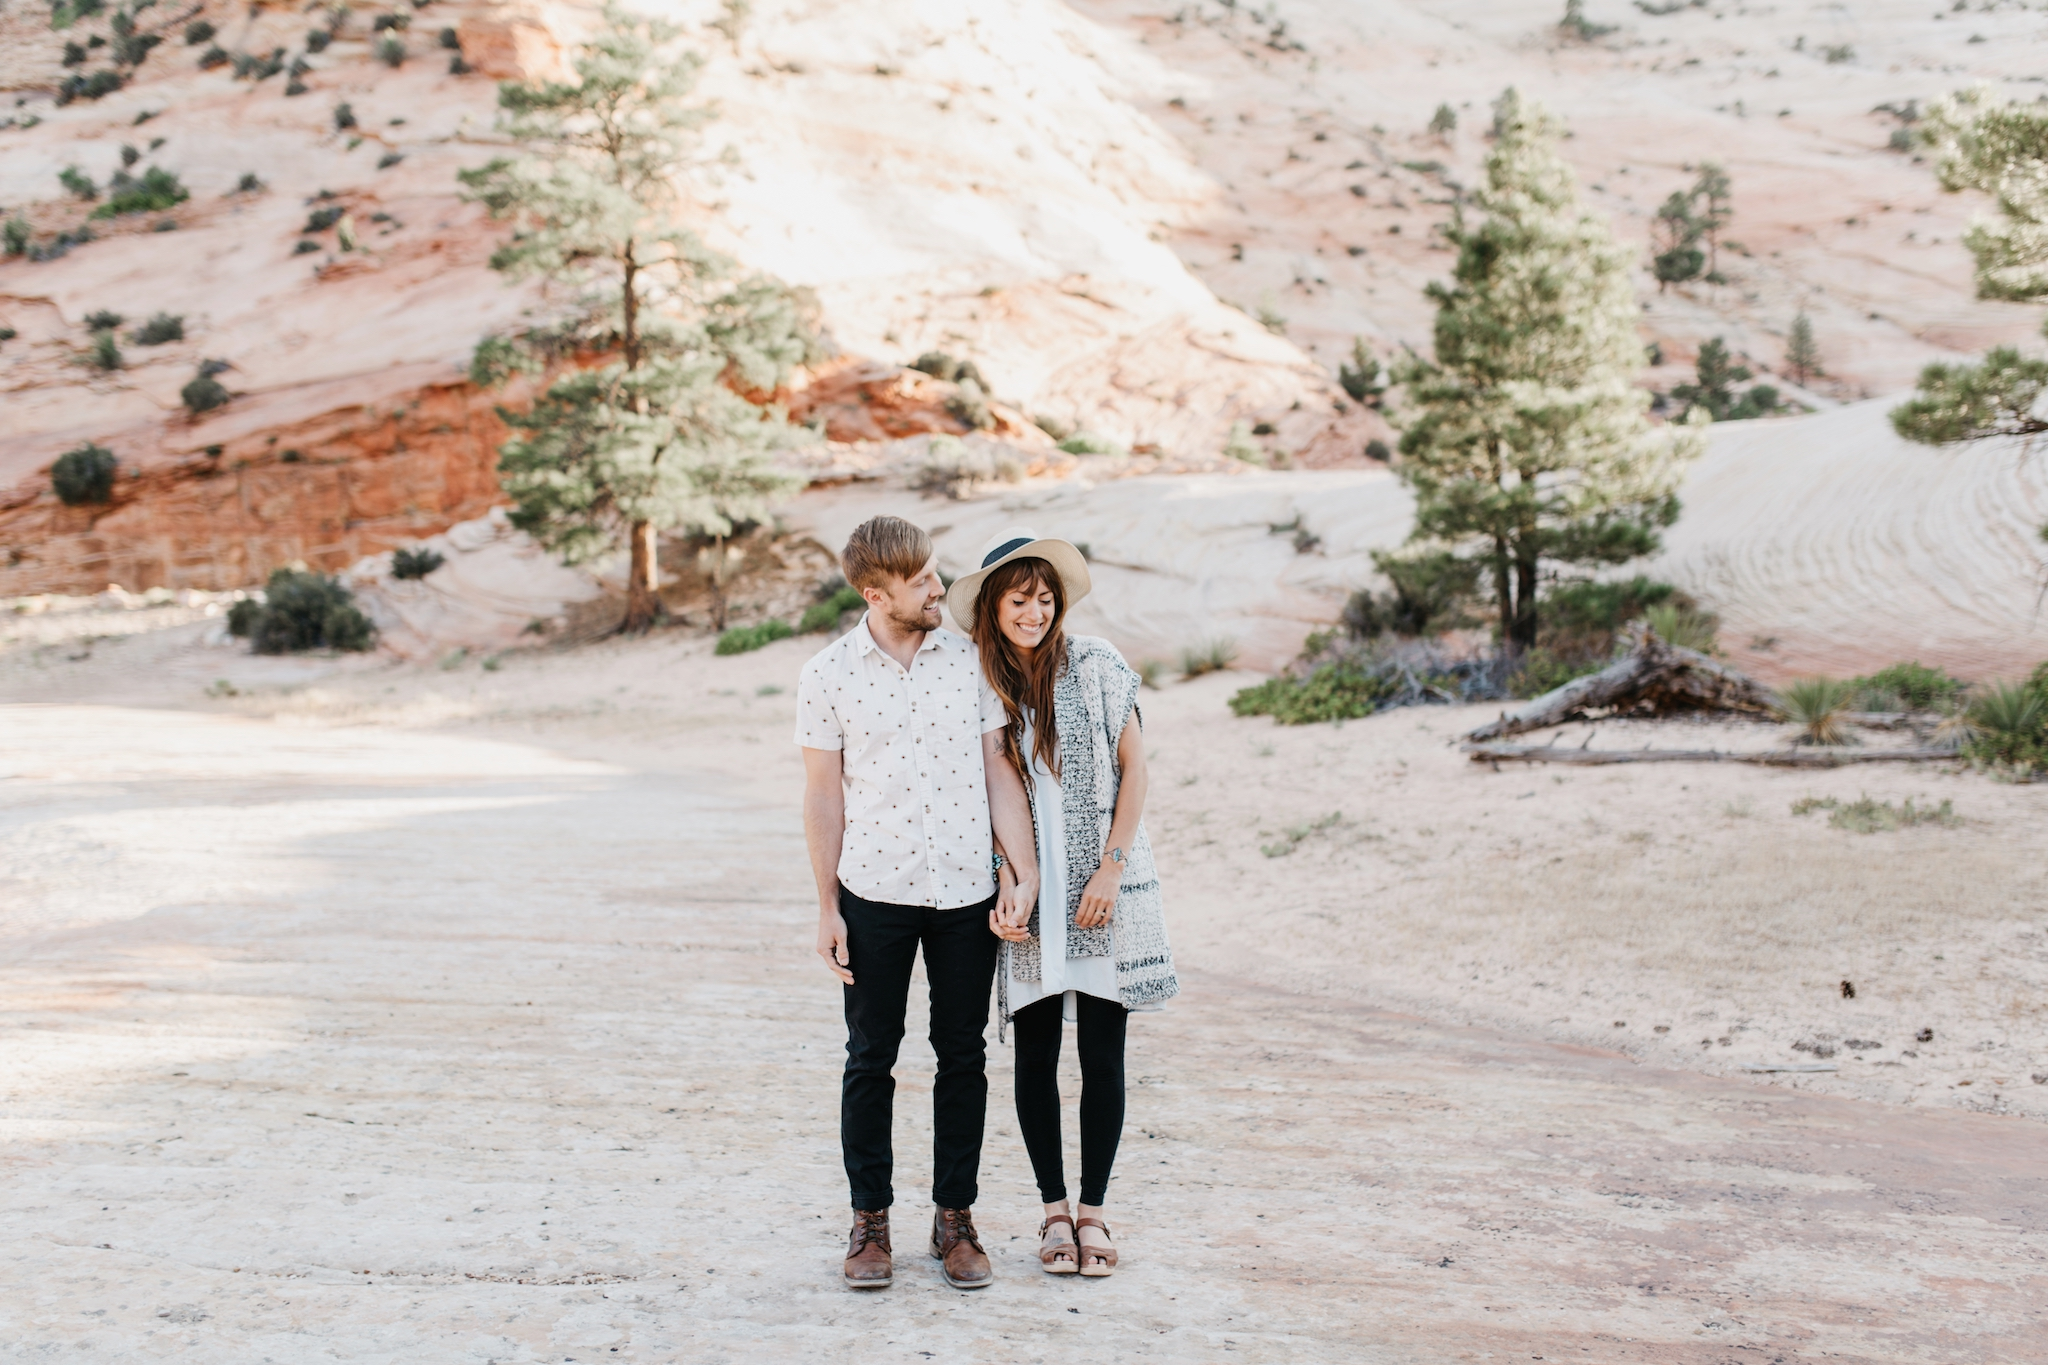 zion - engagement - photography 160.jpg